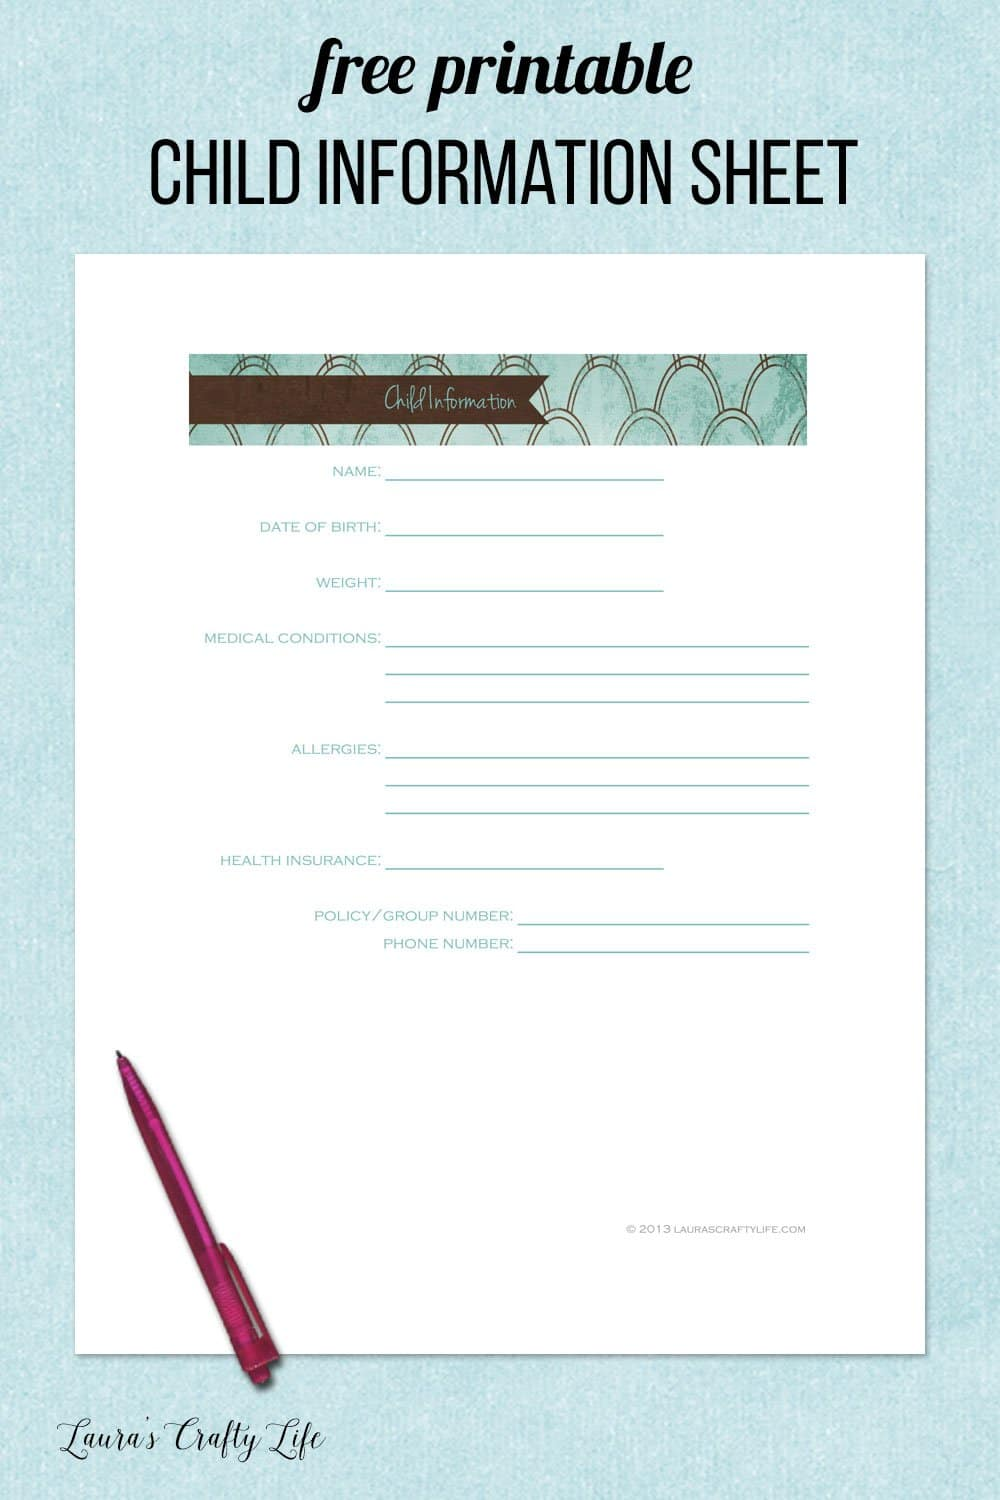 free printable child information sheet